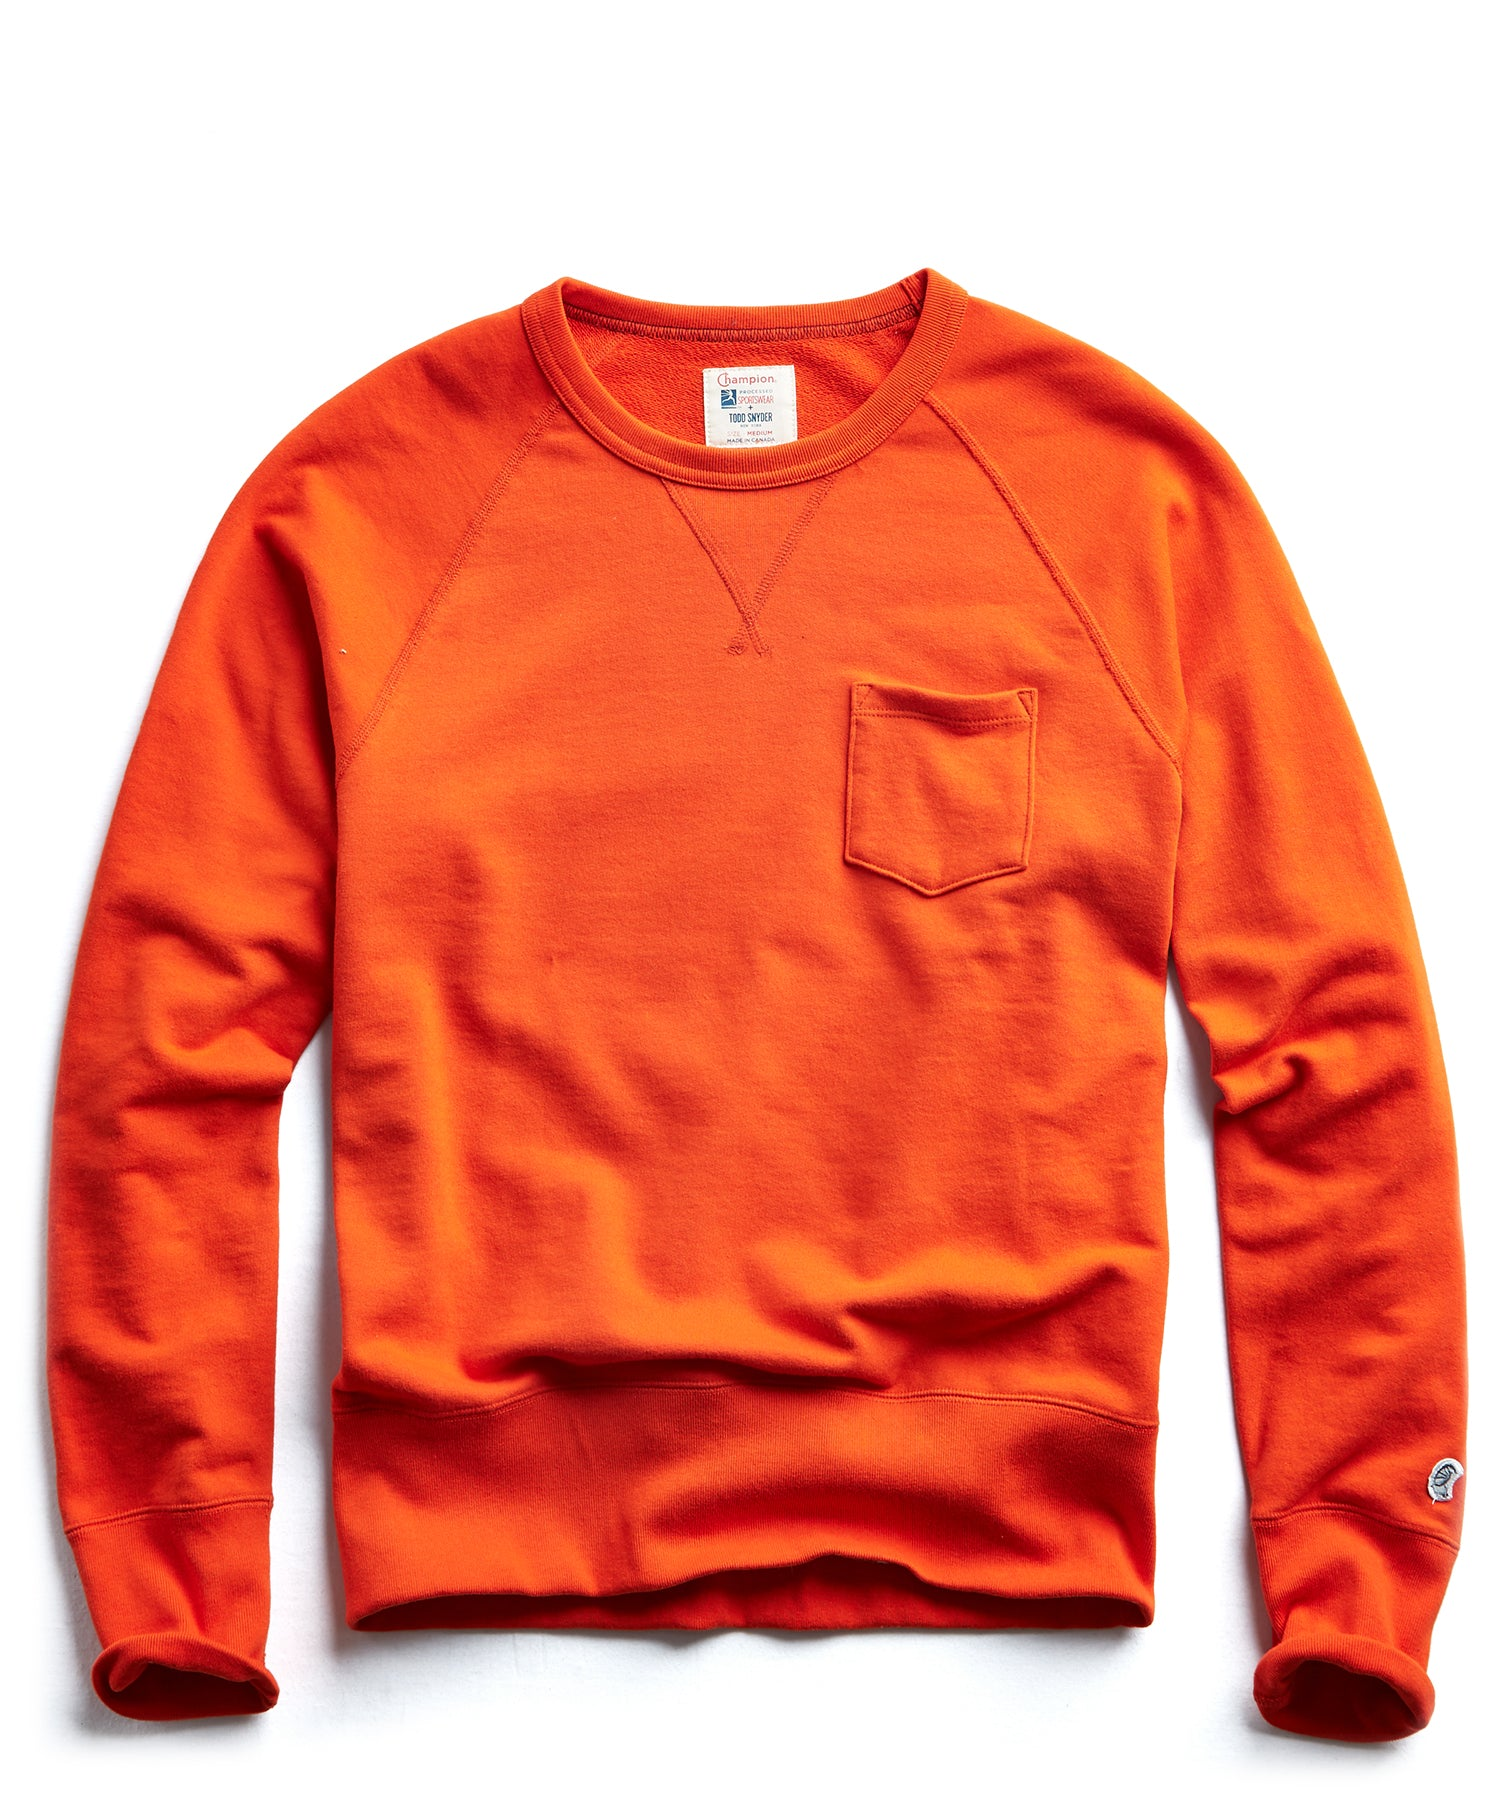 Terry Pocket Sweatshirt in Sunset Orange